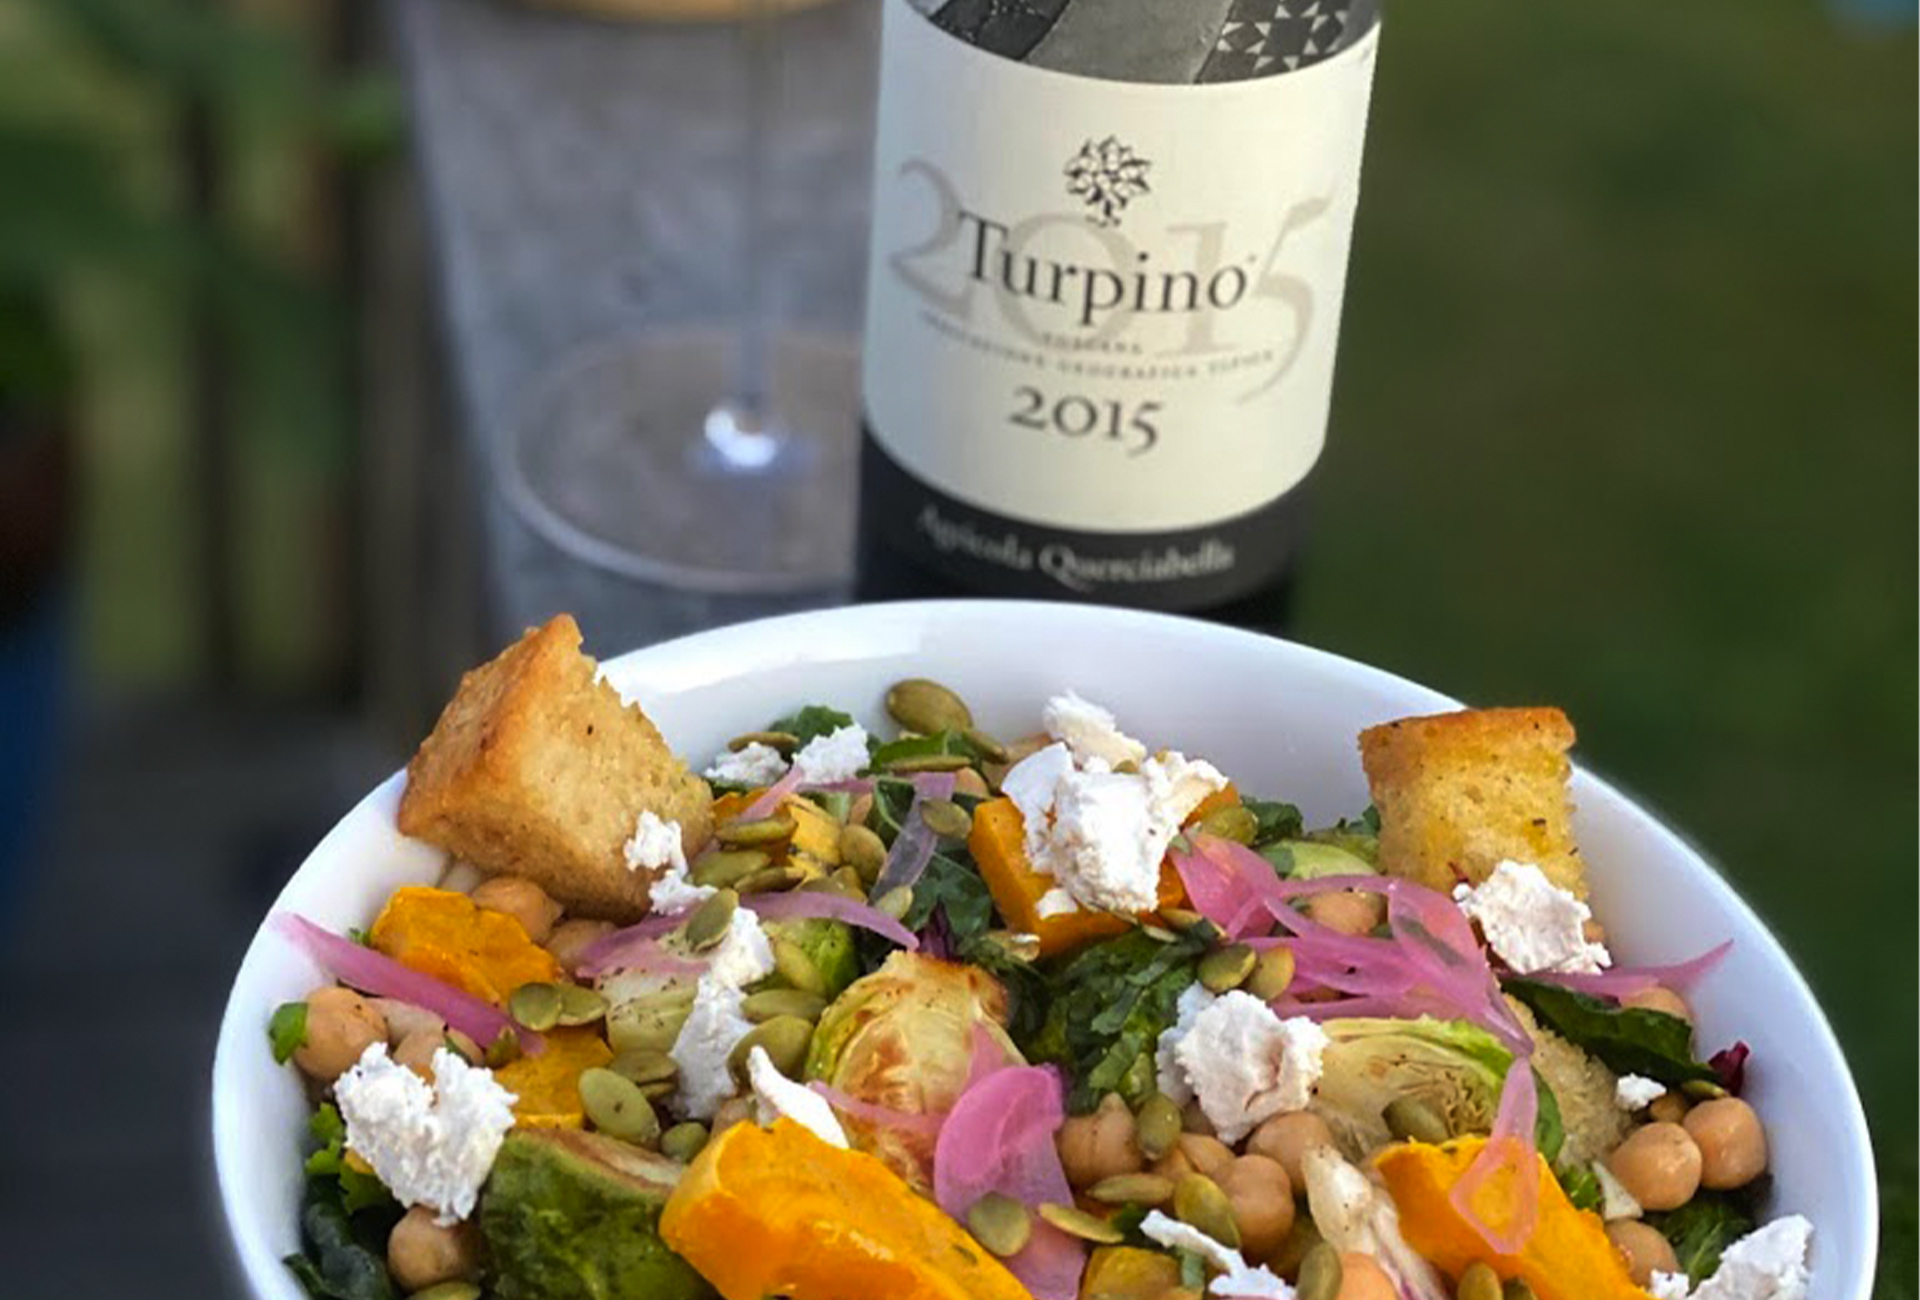 Querciabella Turpino with Autumn Panzanella Salad